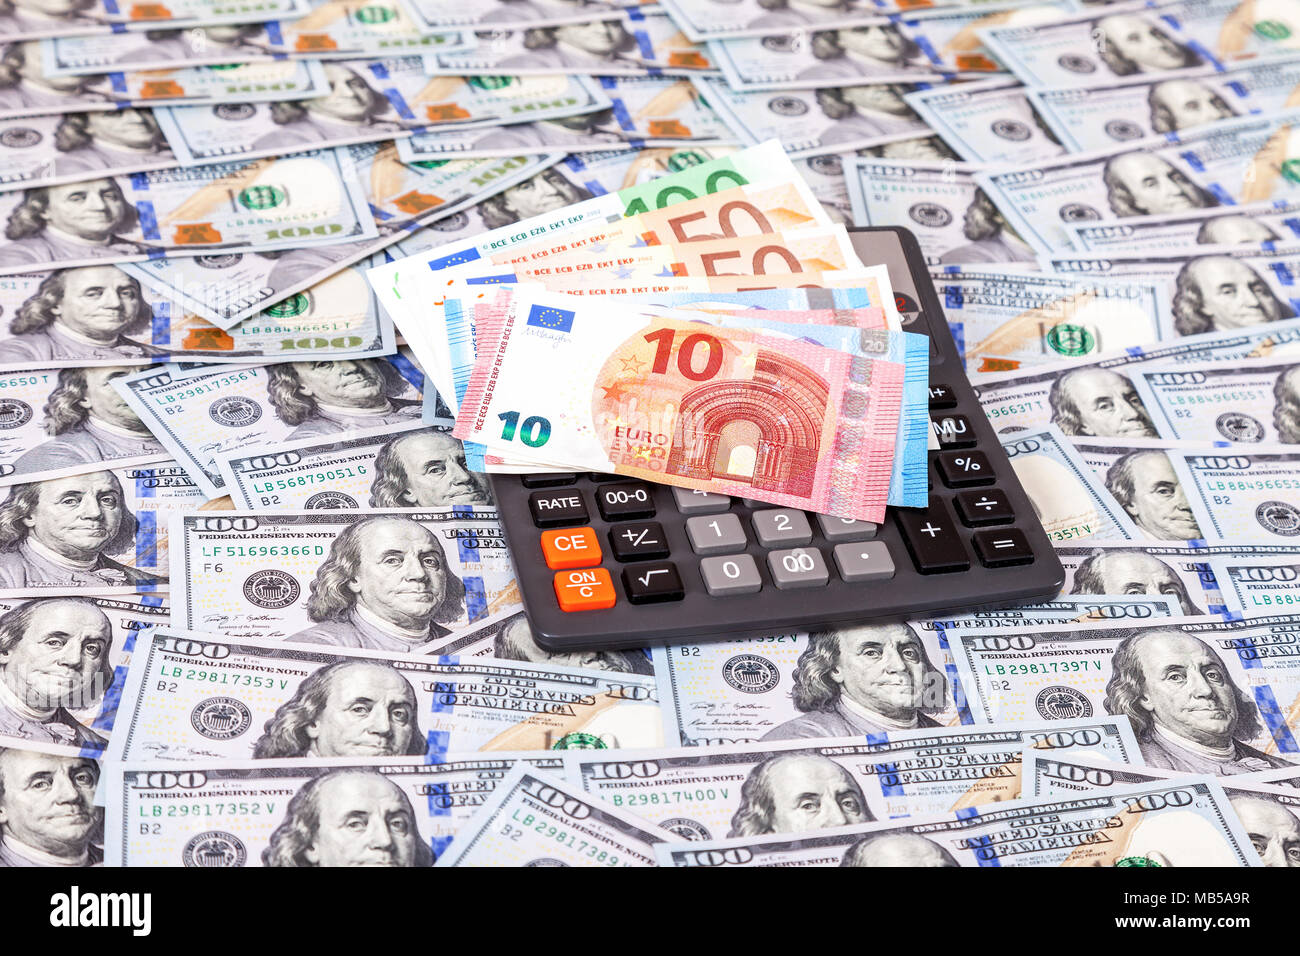 Euro Banknotes And Calculator On Dollars Background